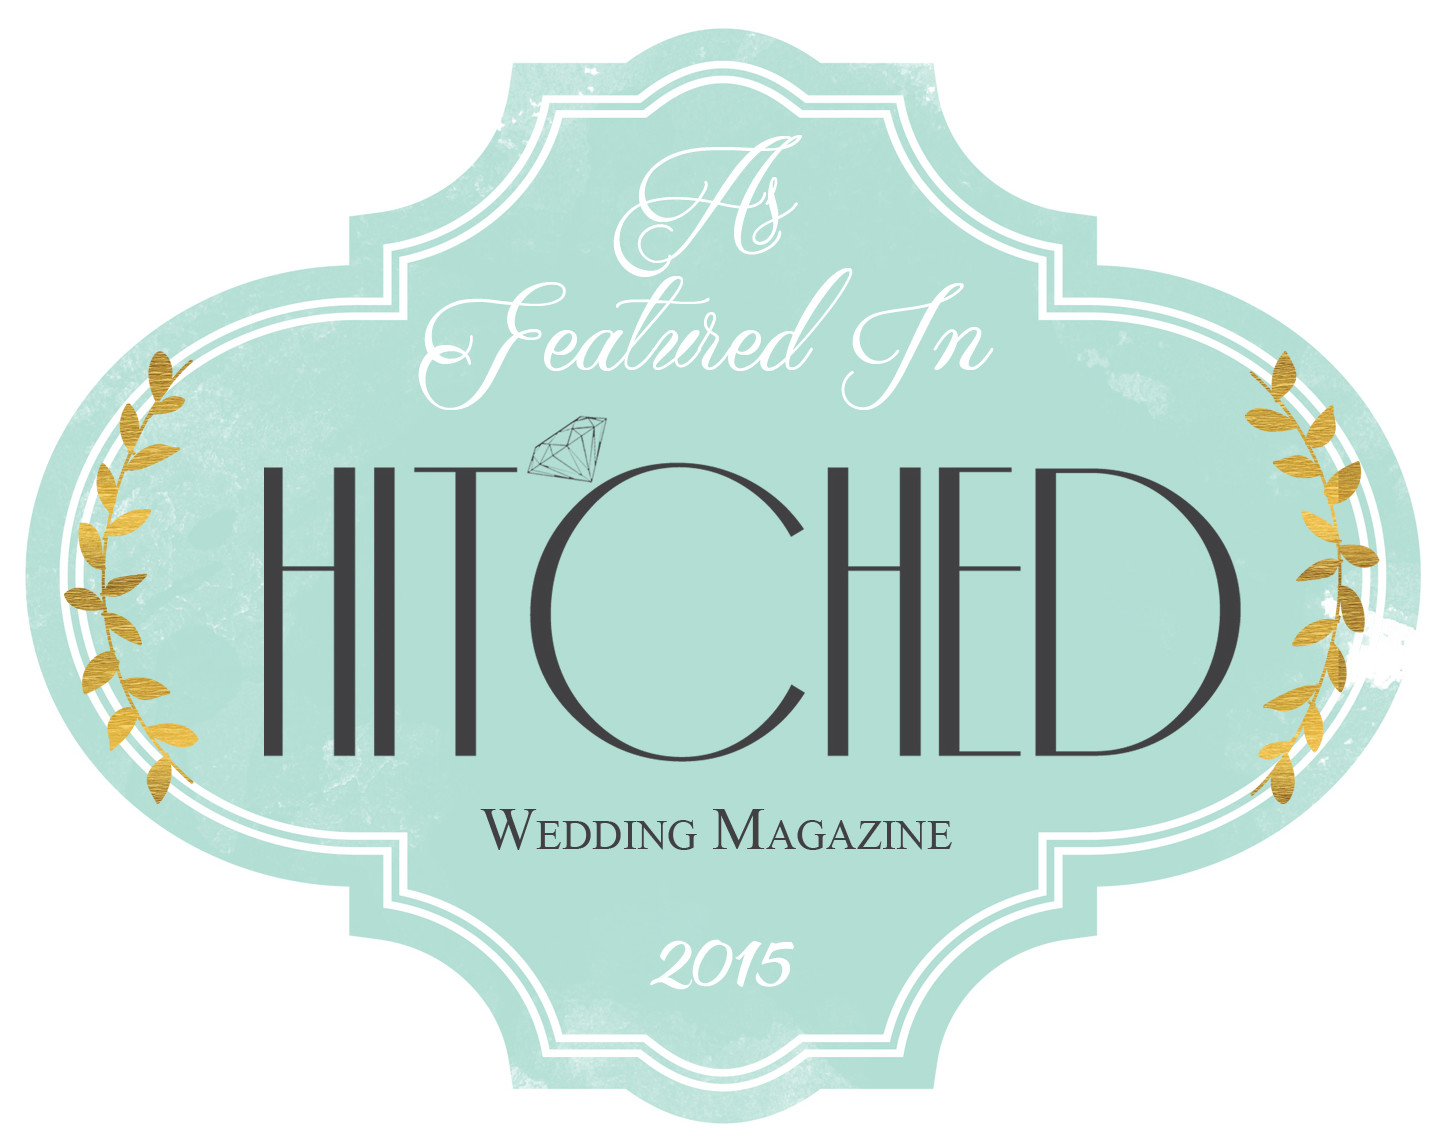 Bear & Sparrow Photography in HITCHED magazine